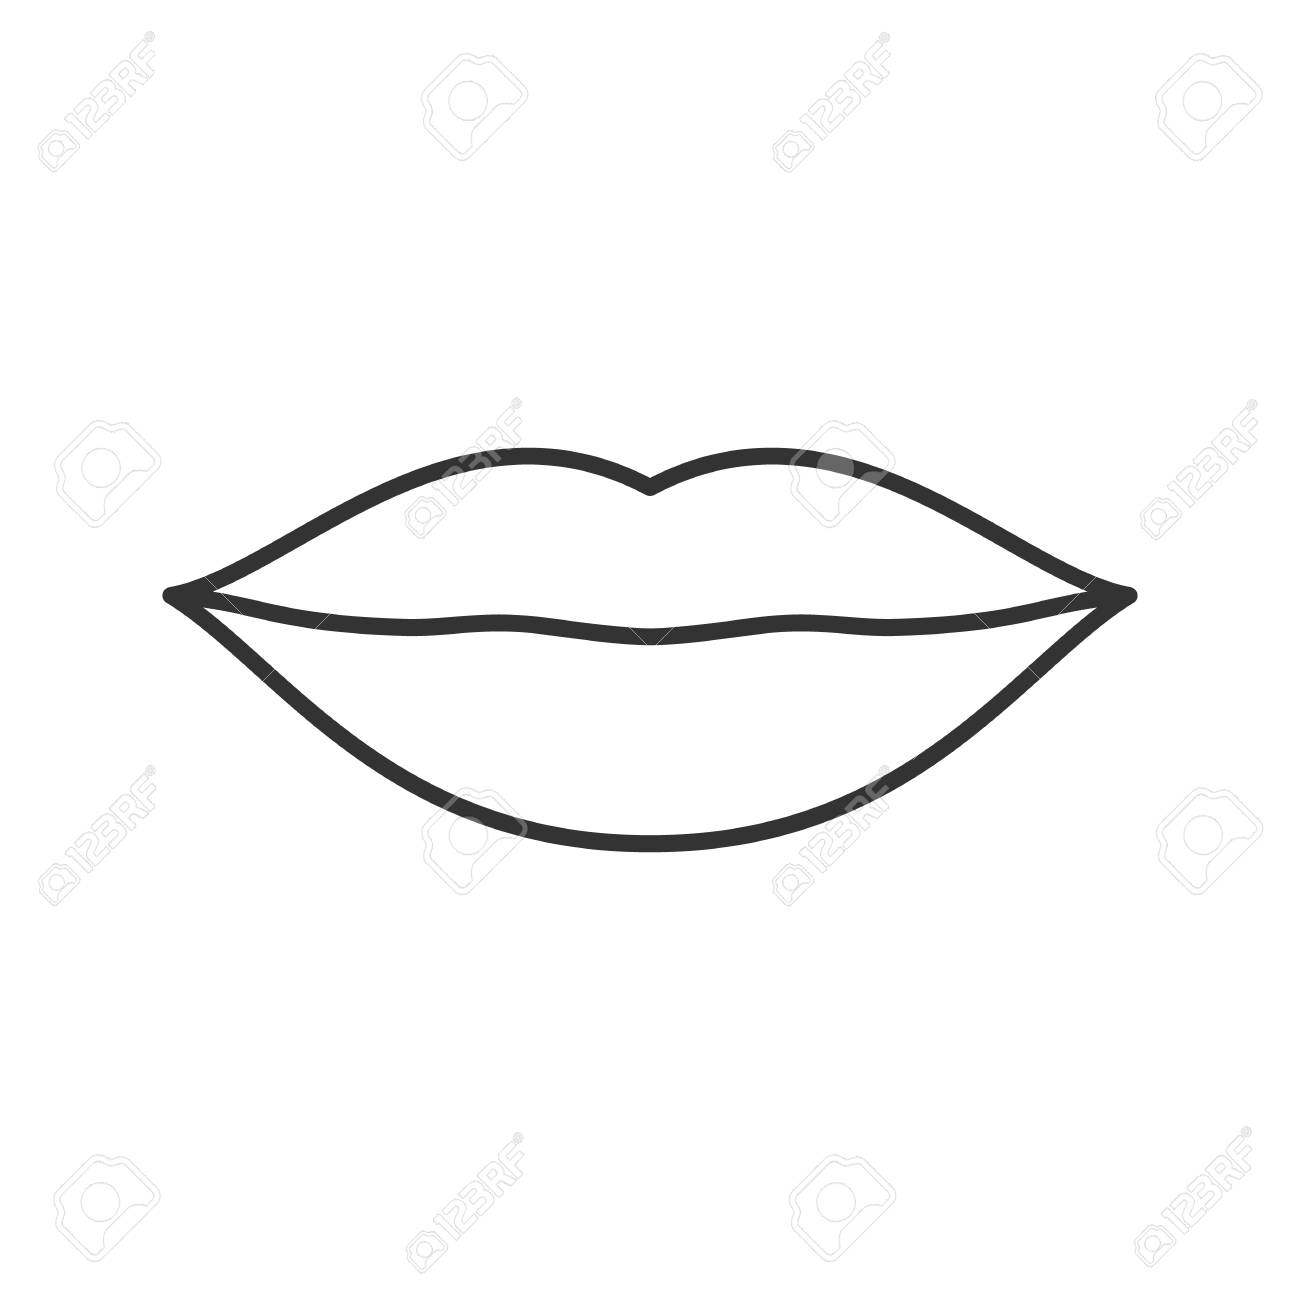 lips linear icon thin line illustration contour symbol vector